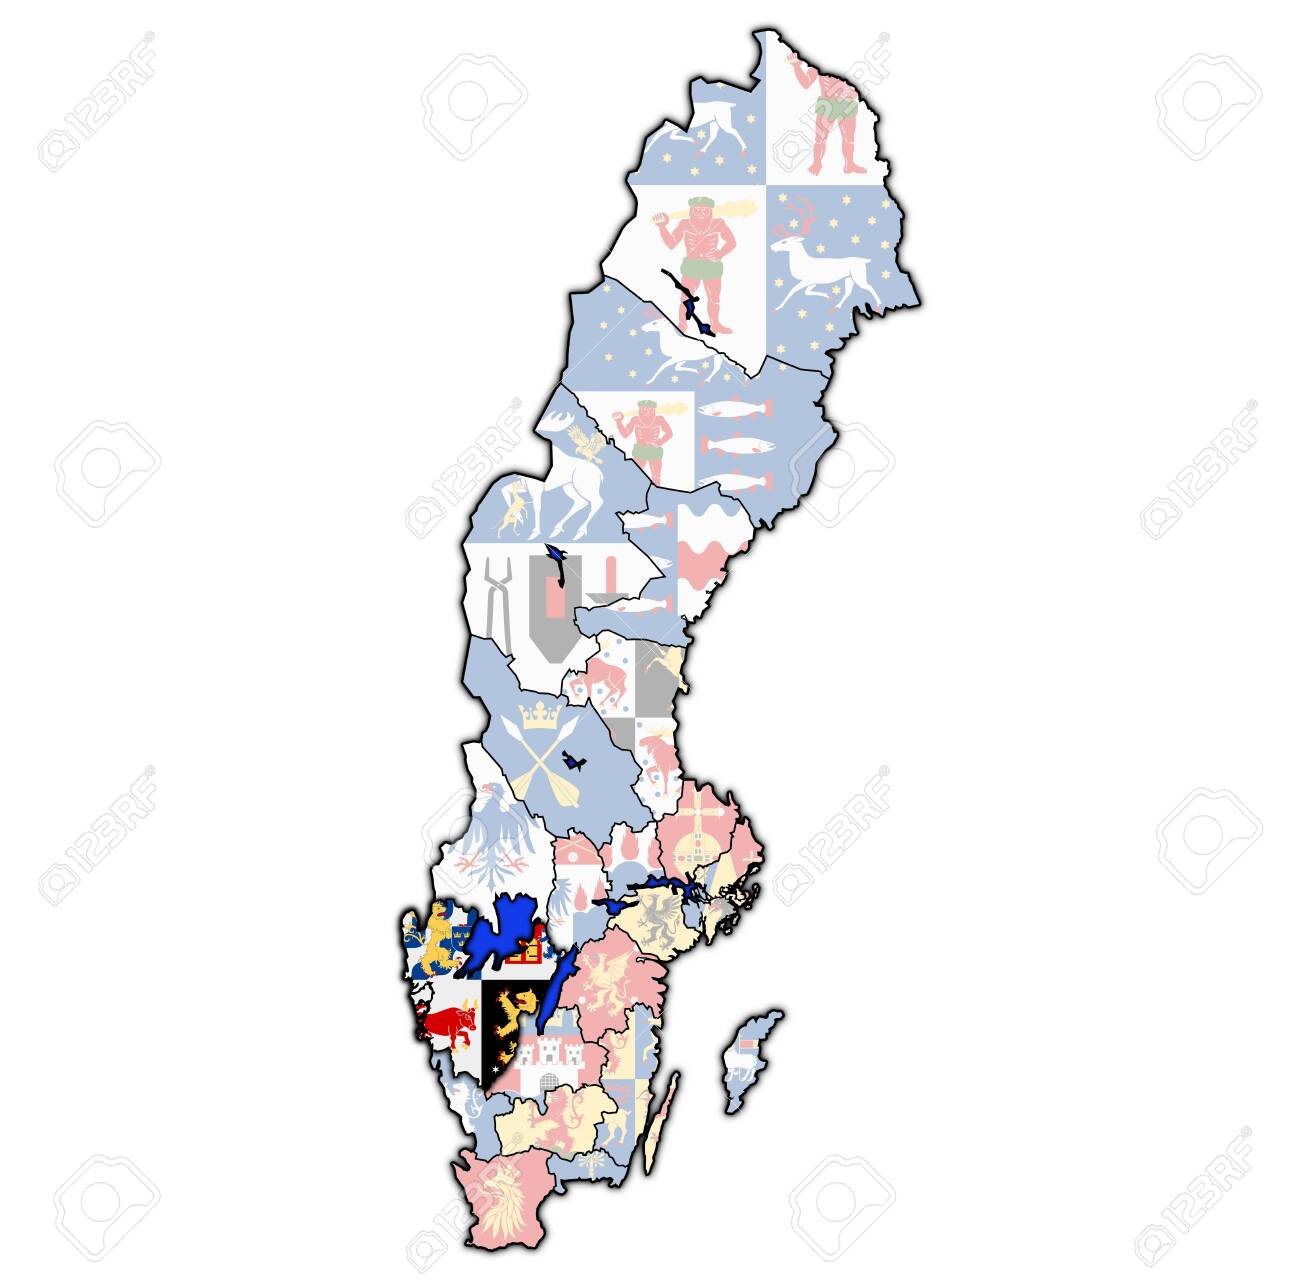 Flag Of Vastra Gotaland County On Map Of Administrative Divisions Stock Photo Picture And Royalty Free Image Image 123055170